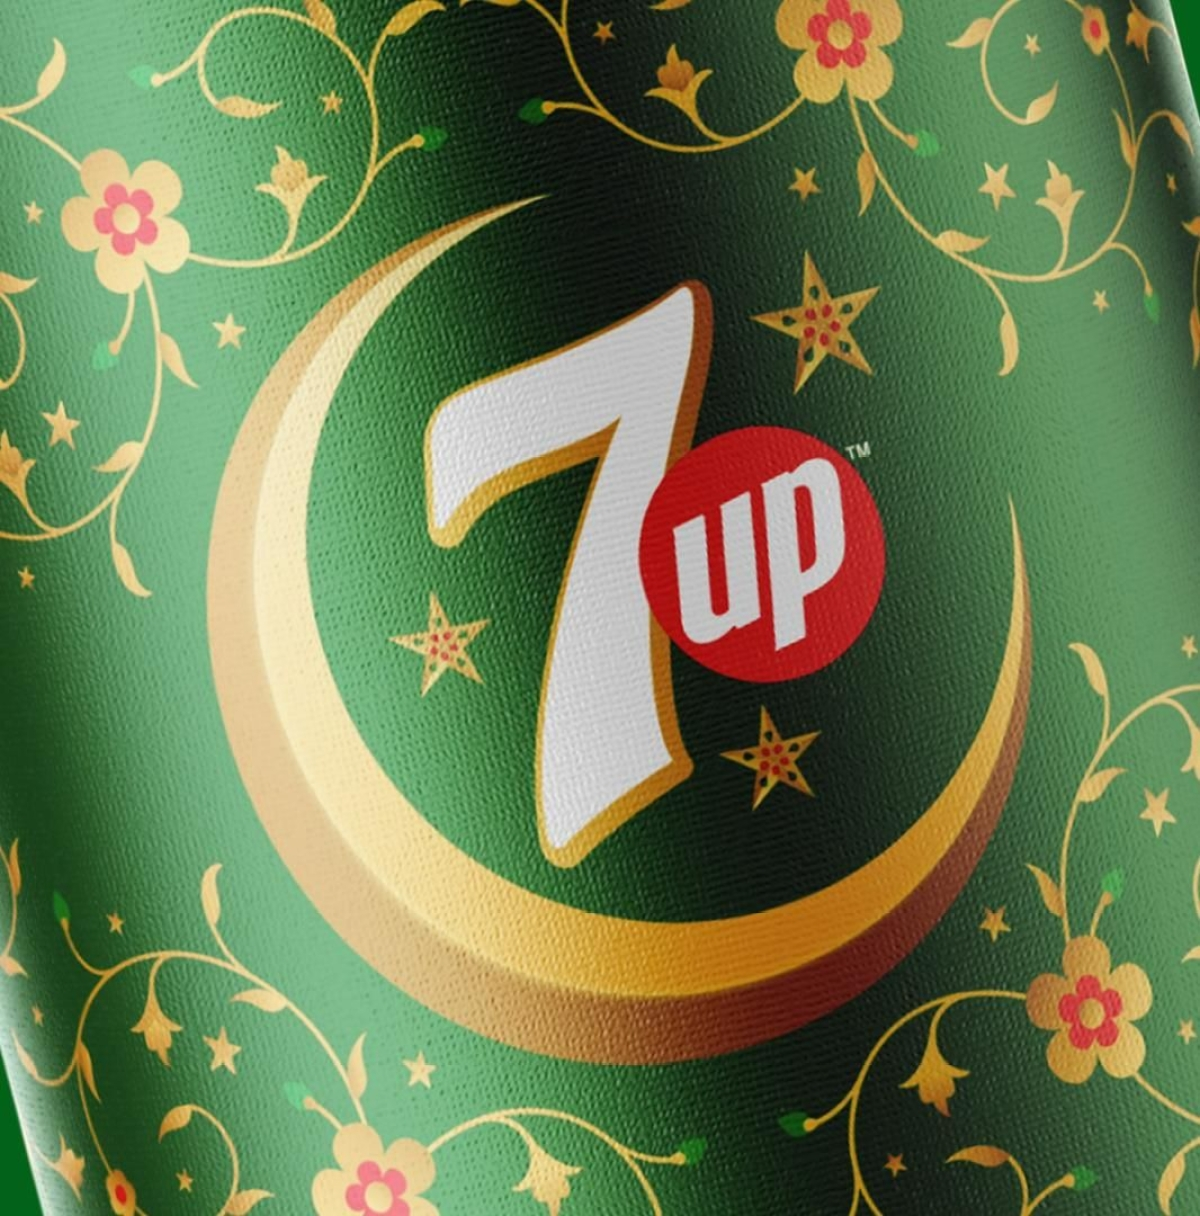 From cans to cutlery, Pepsi unveils 7Up's Ramzan-themed limited edition collection